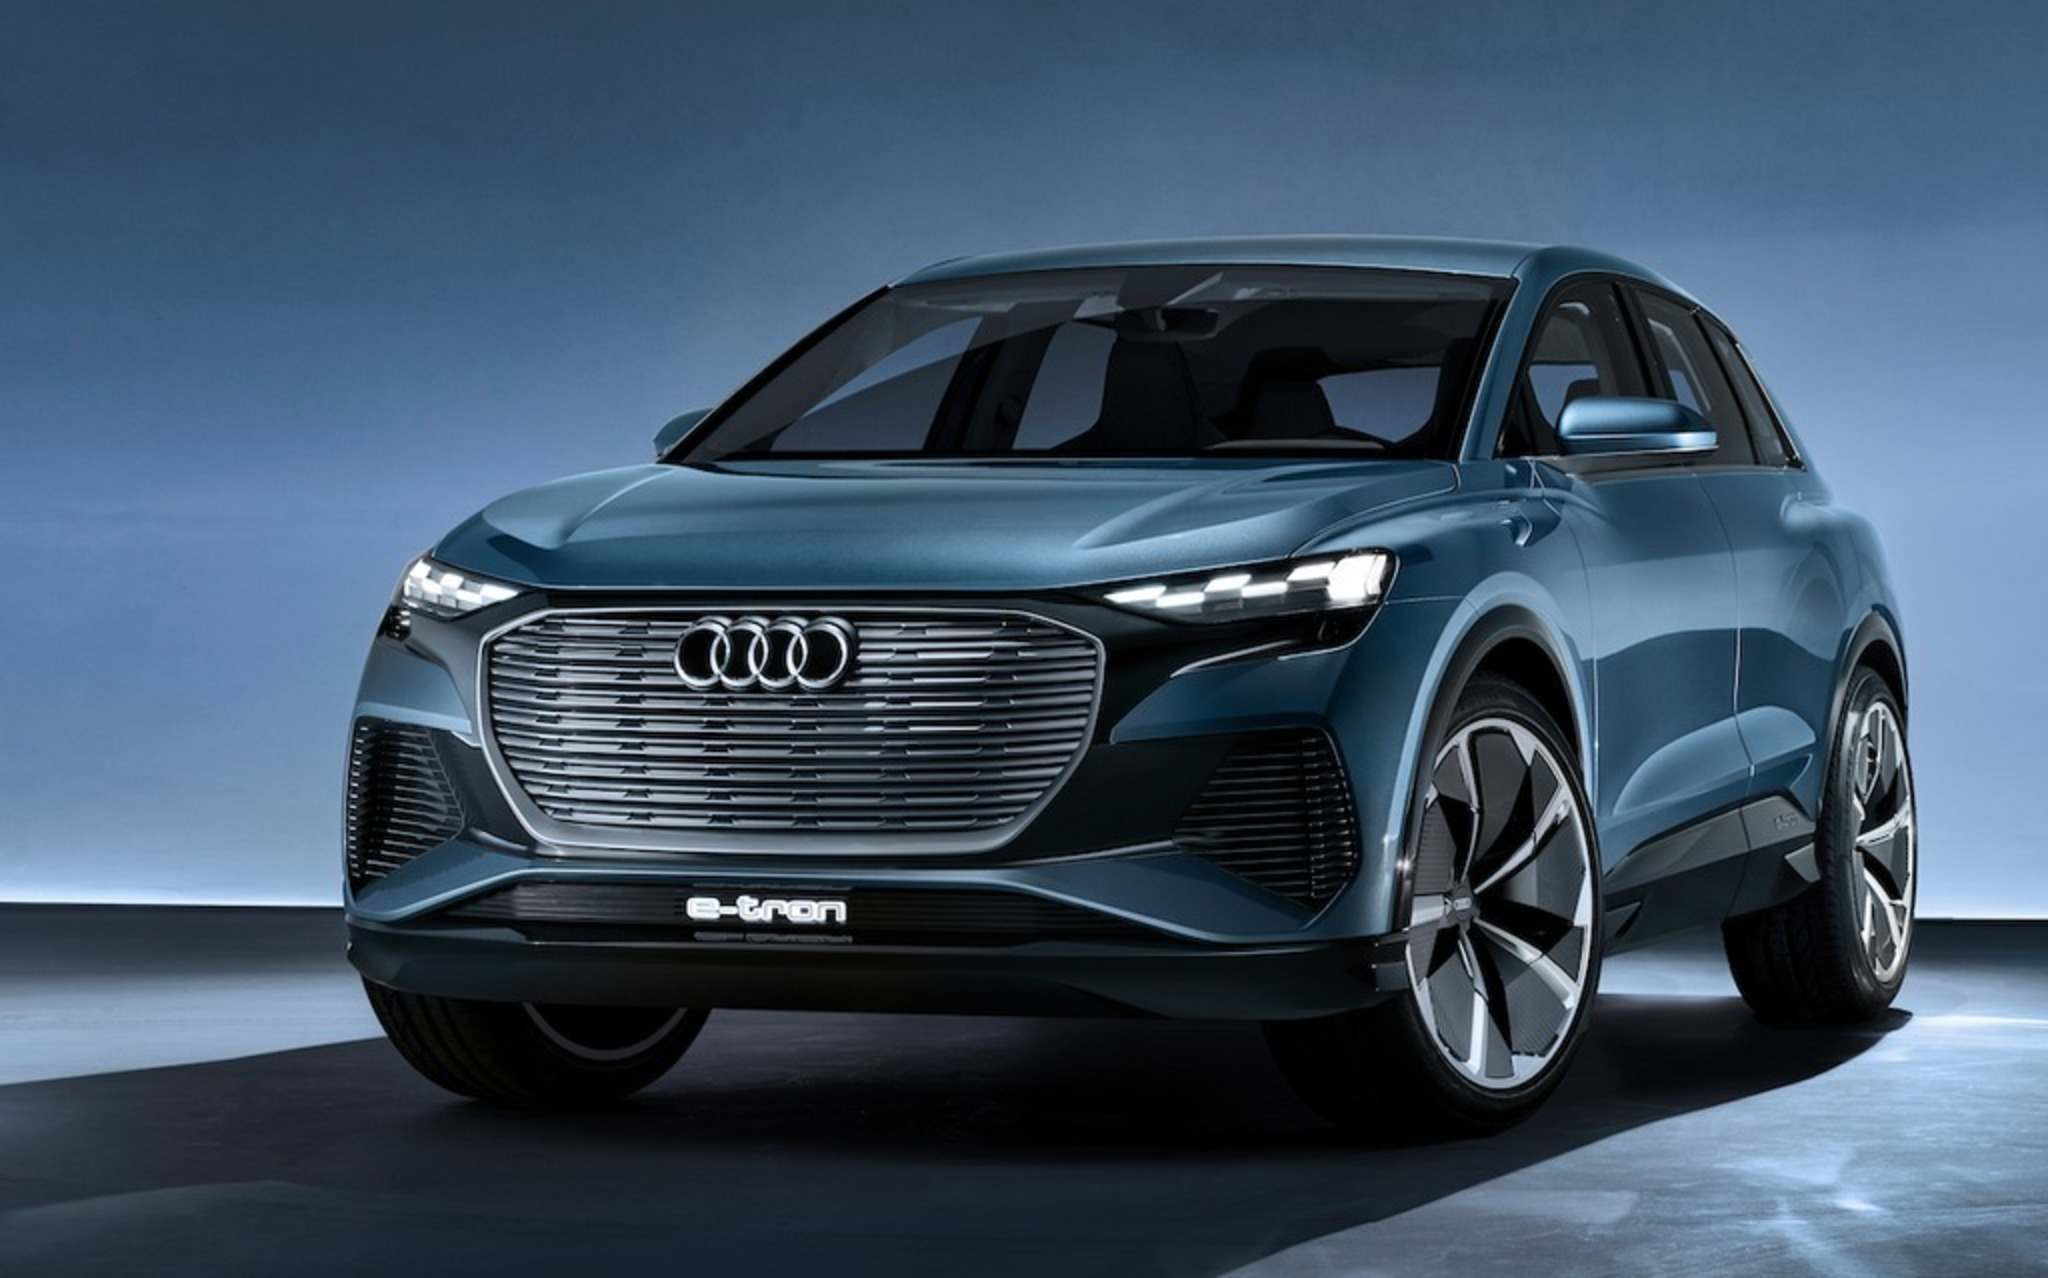 AudiAudi's fully electric Q4 e-tron Concept is based on Volkswagen's MEB architecture.